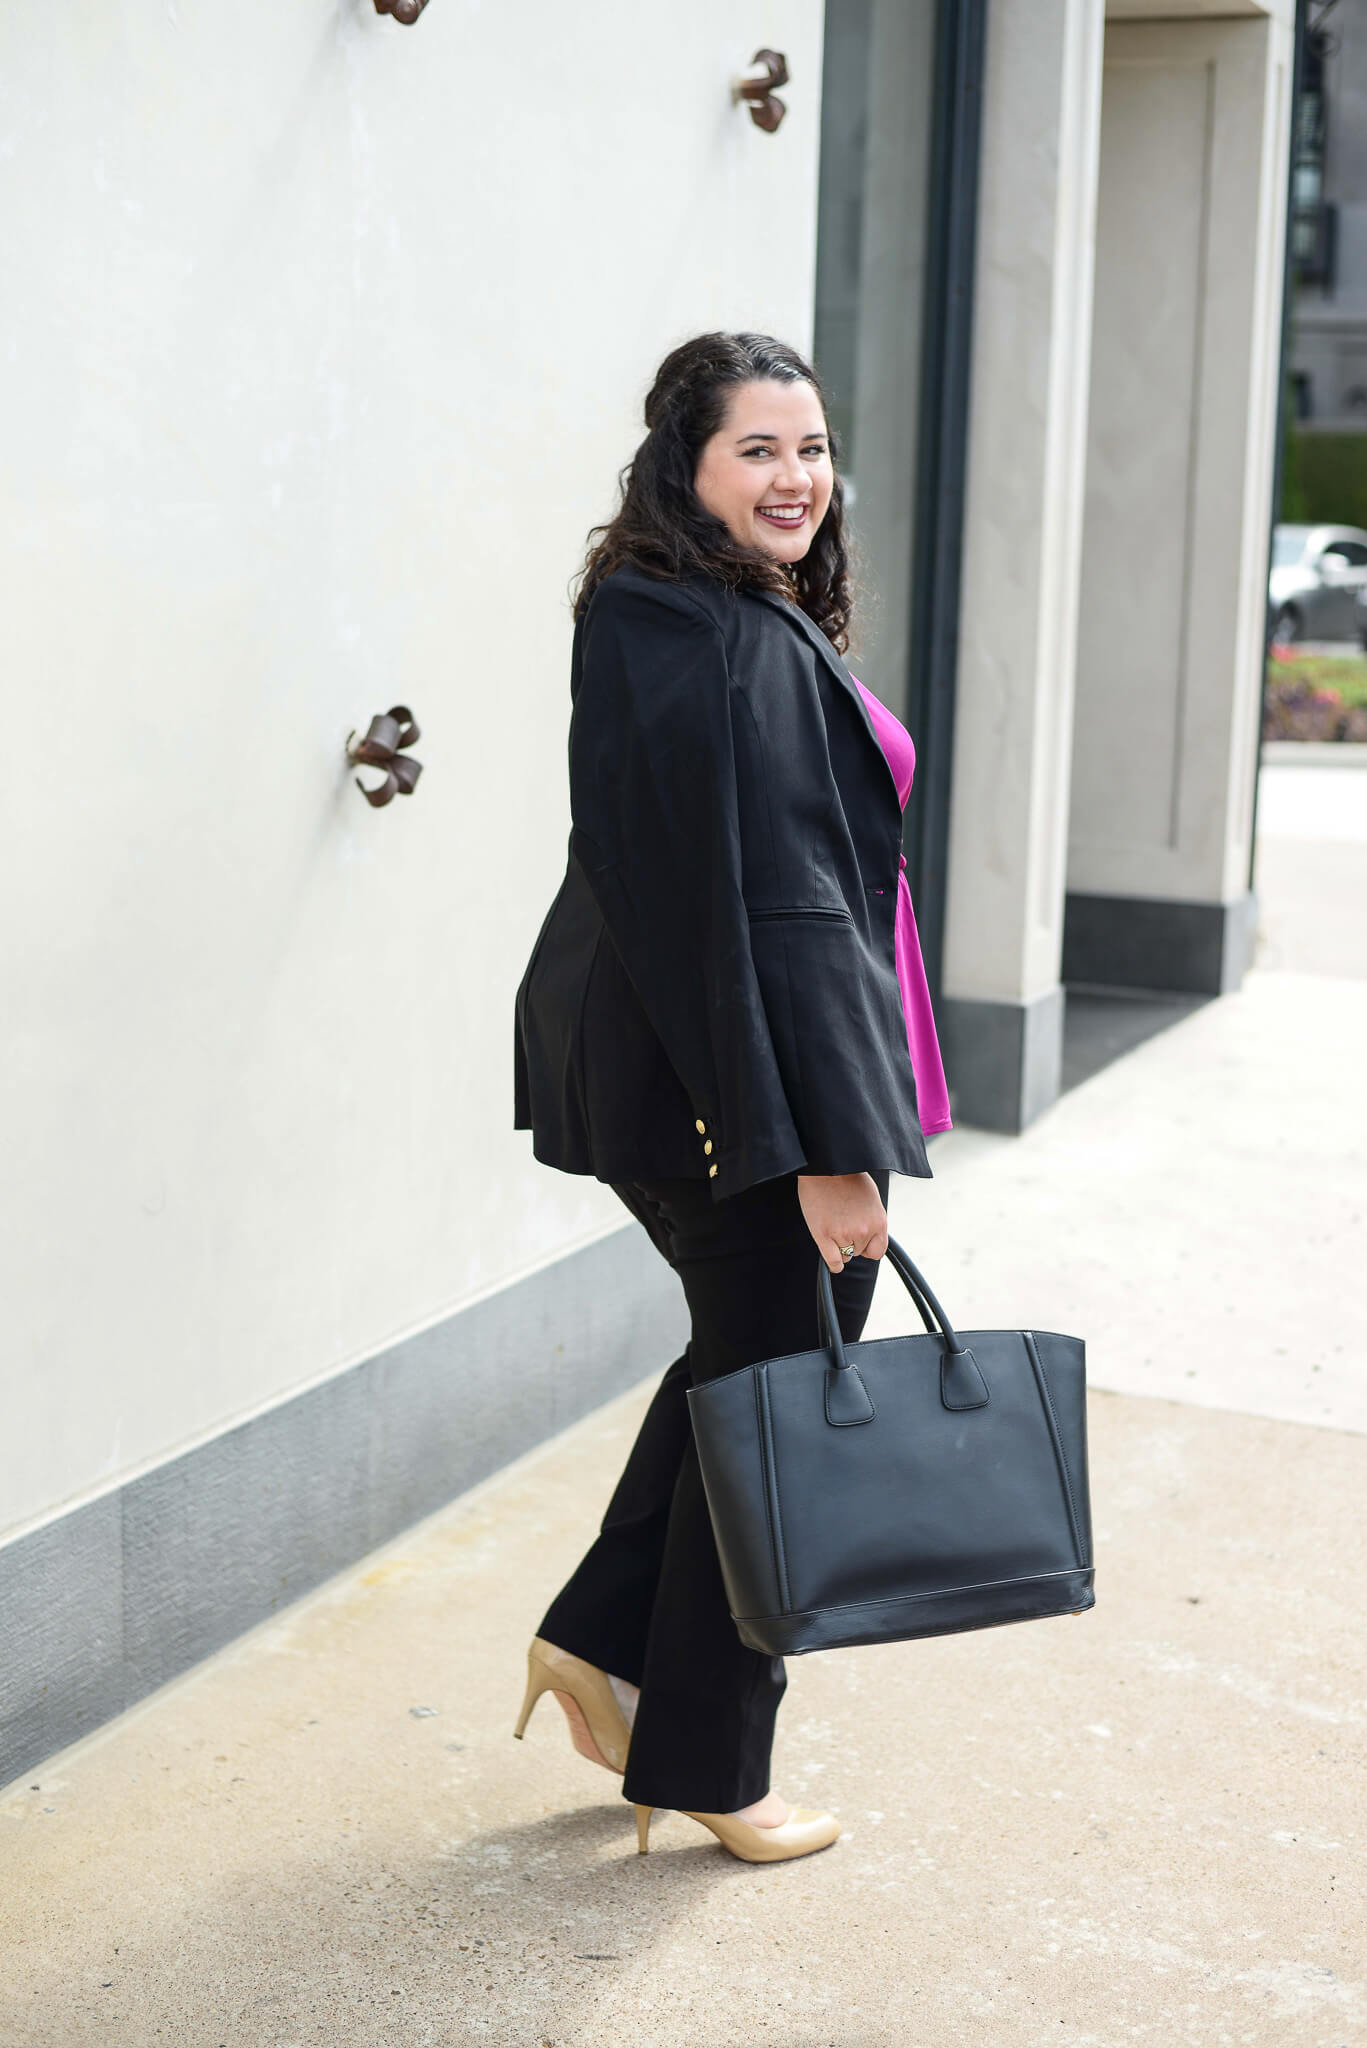 I'm always on the hunt for fabulous plus size business casual workwear an Lane Bryant is making it super easy with their new workwear section just in time for the start of school